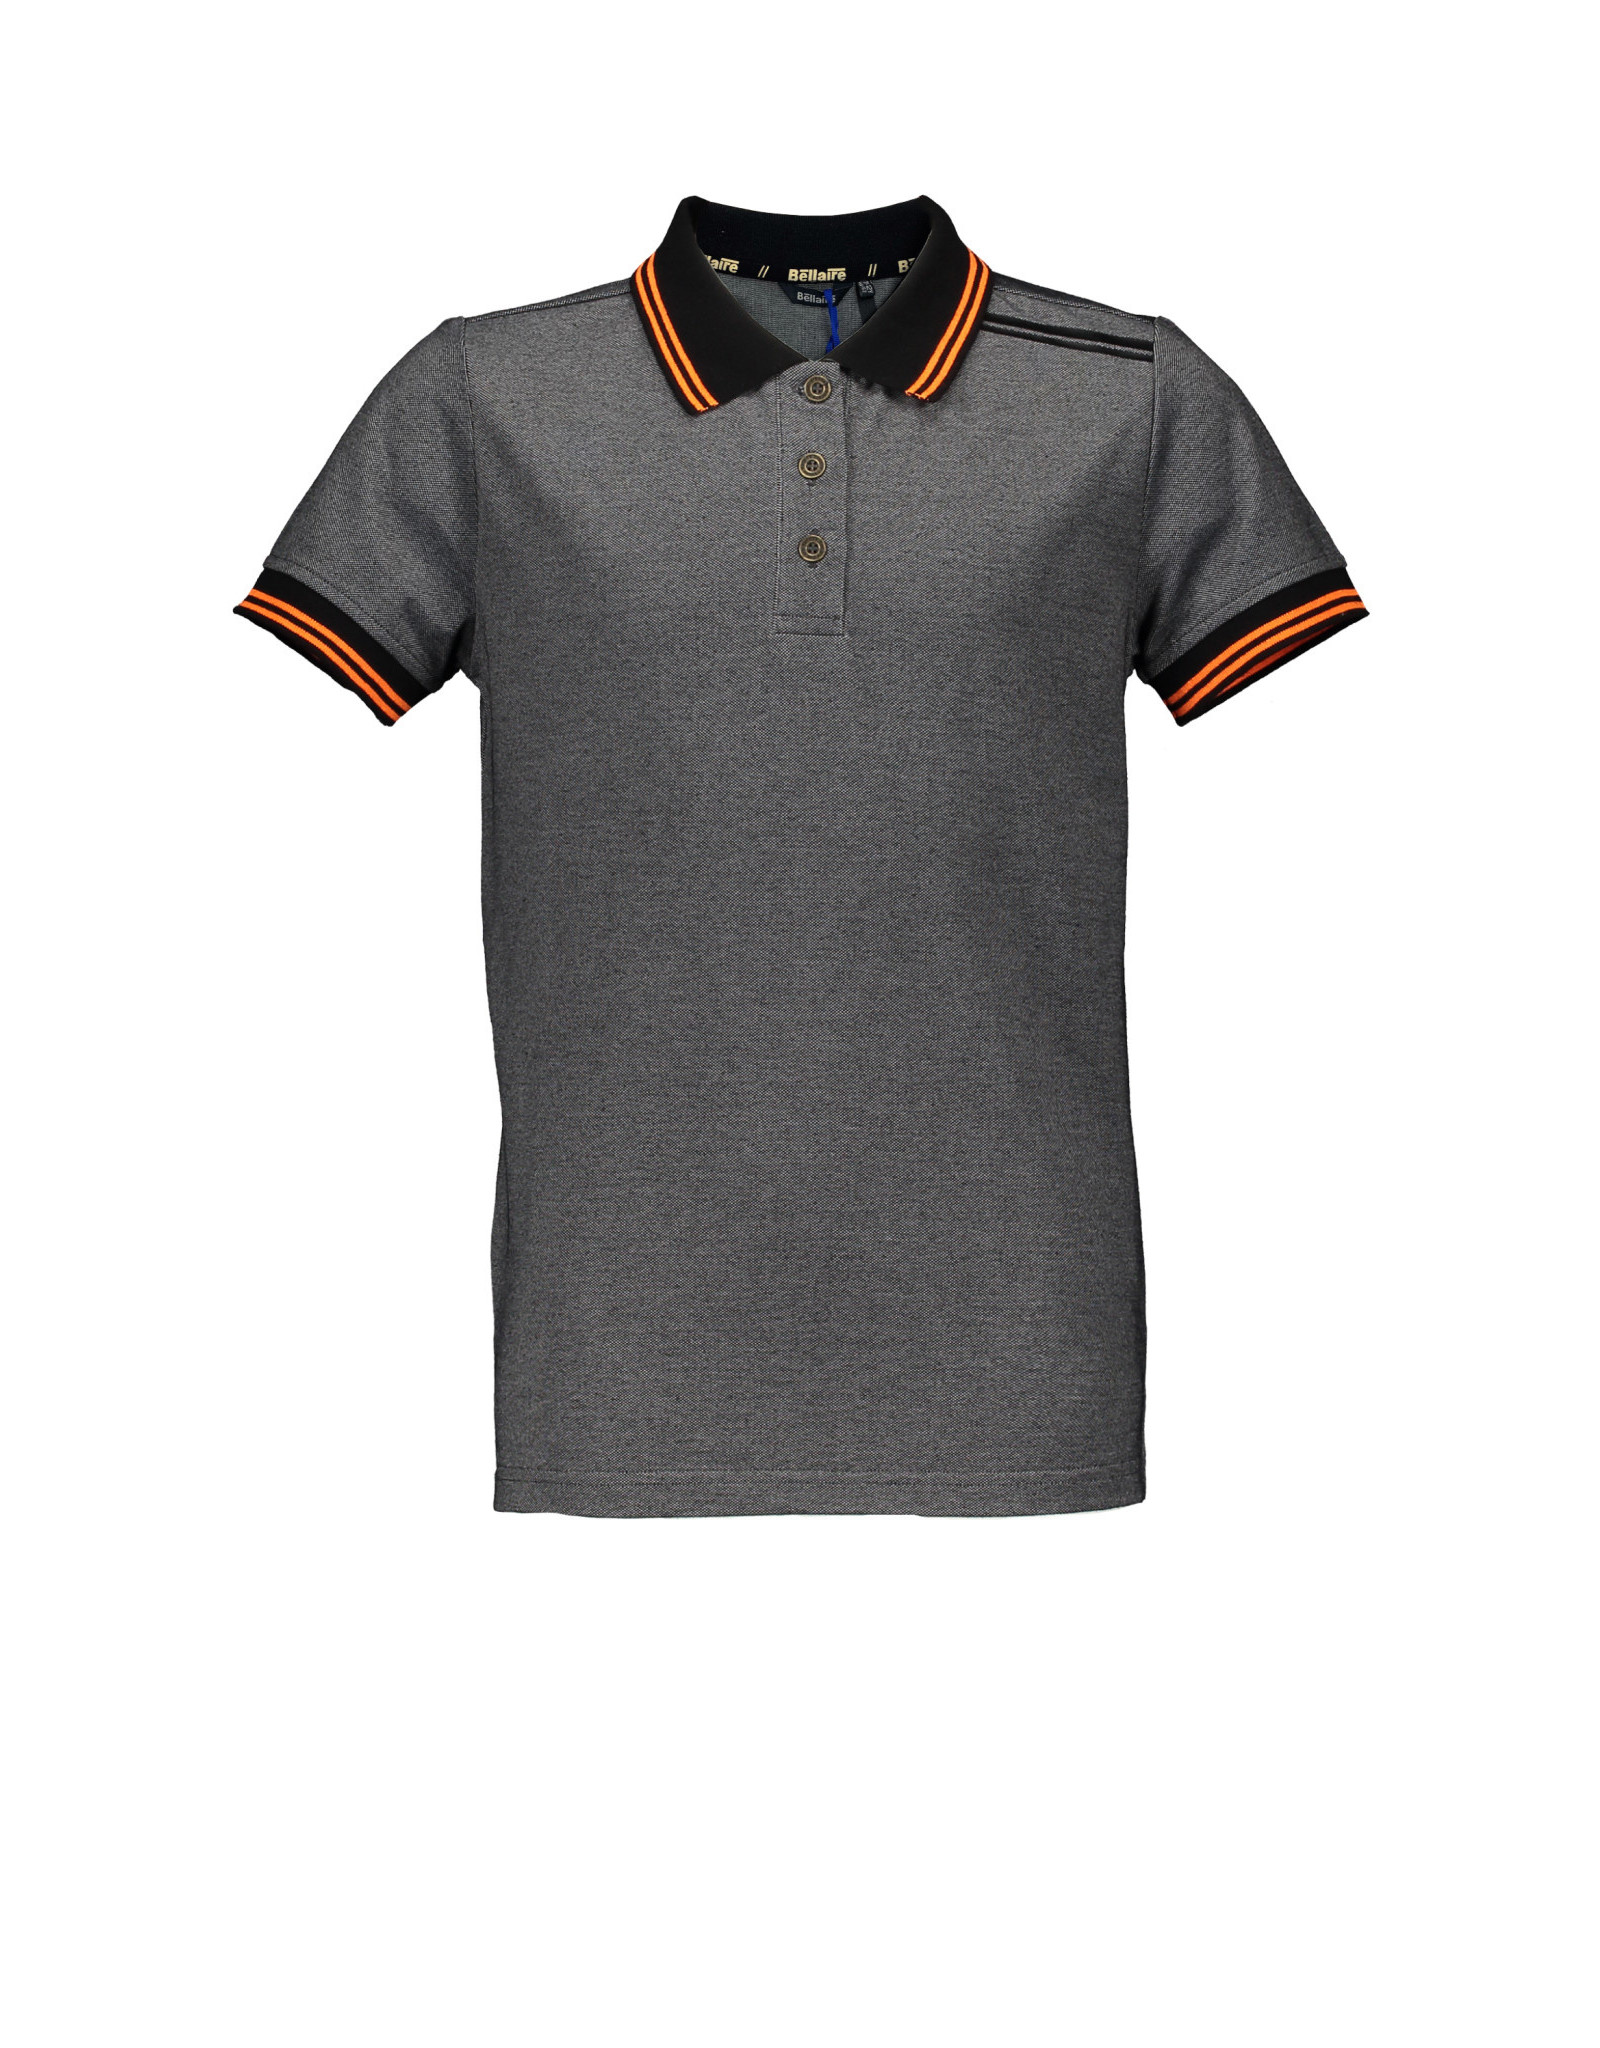 Bellaire Bellaire jongens polo t-shirt Kolo Jet Black